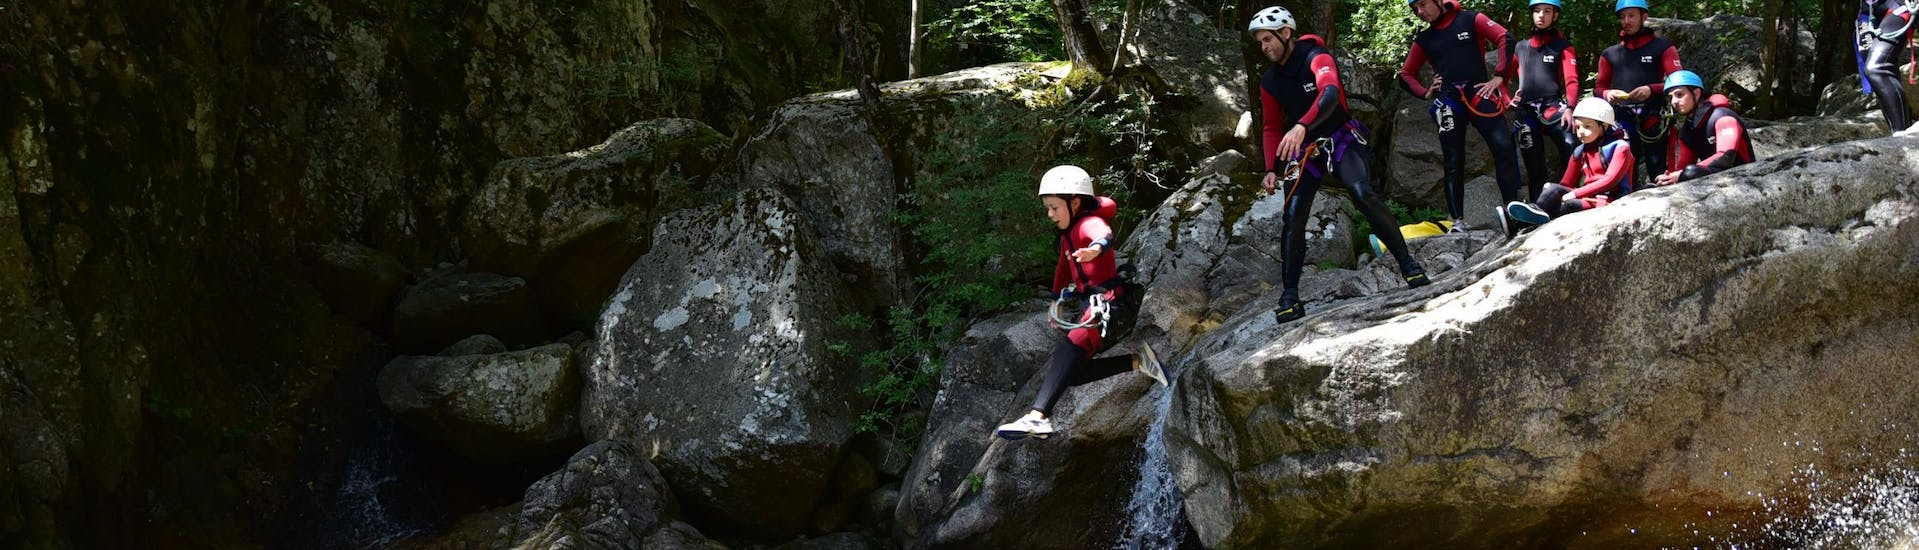 A kid is jumping in a natural pool during a Private Canyoning in Pulischellu - Discovery (12 ppl max) trip with Corsica Madness.